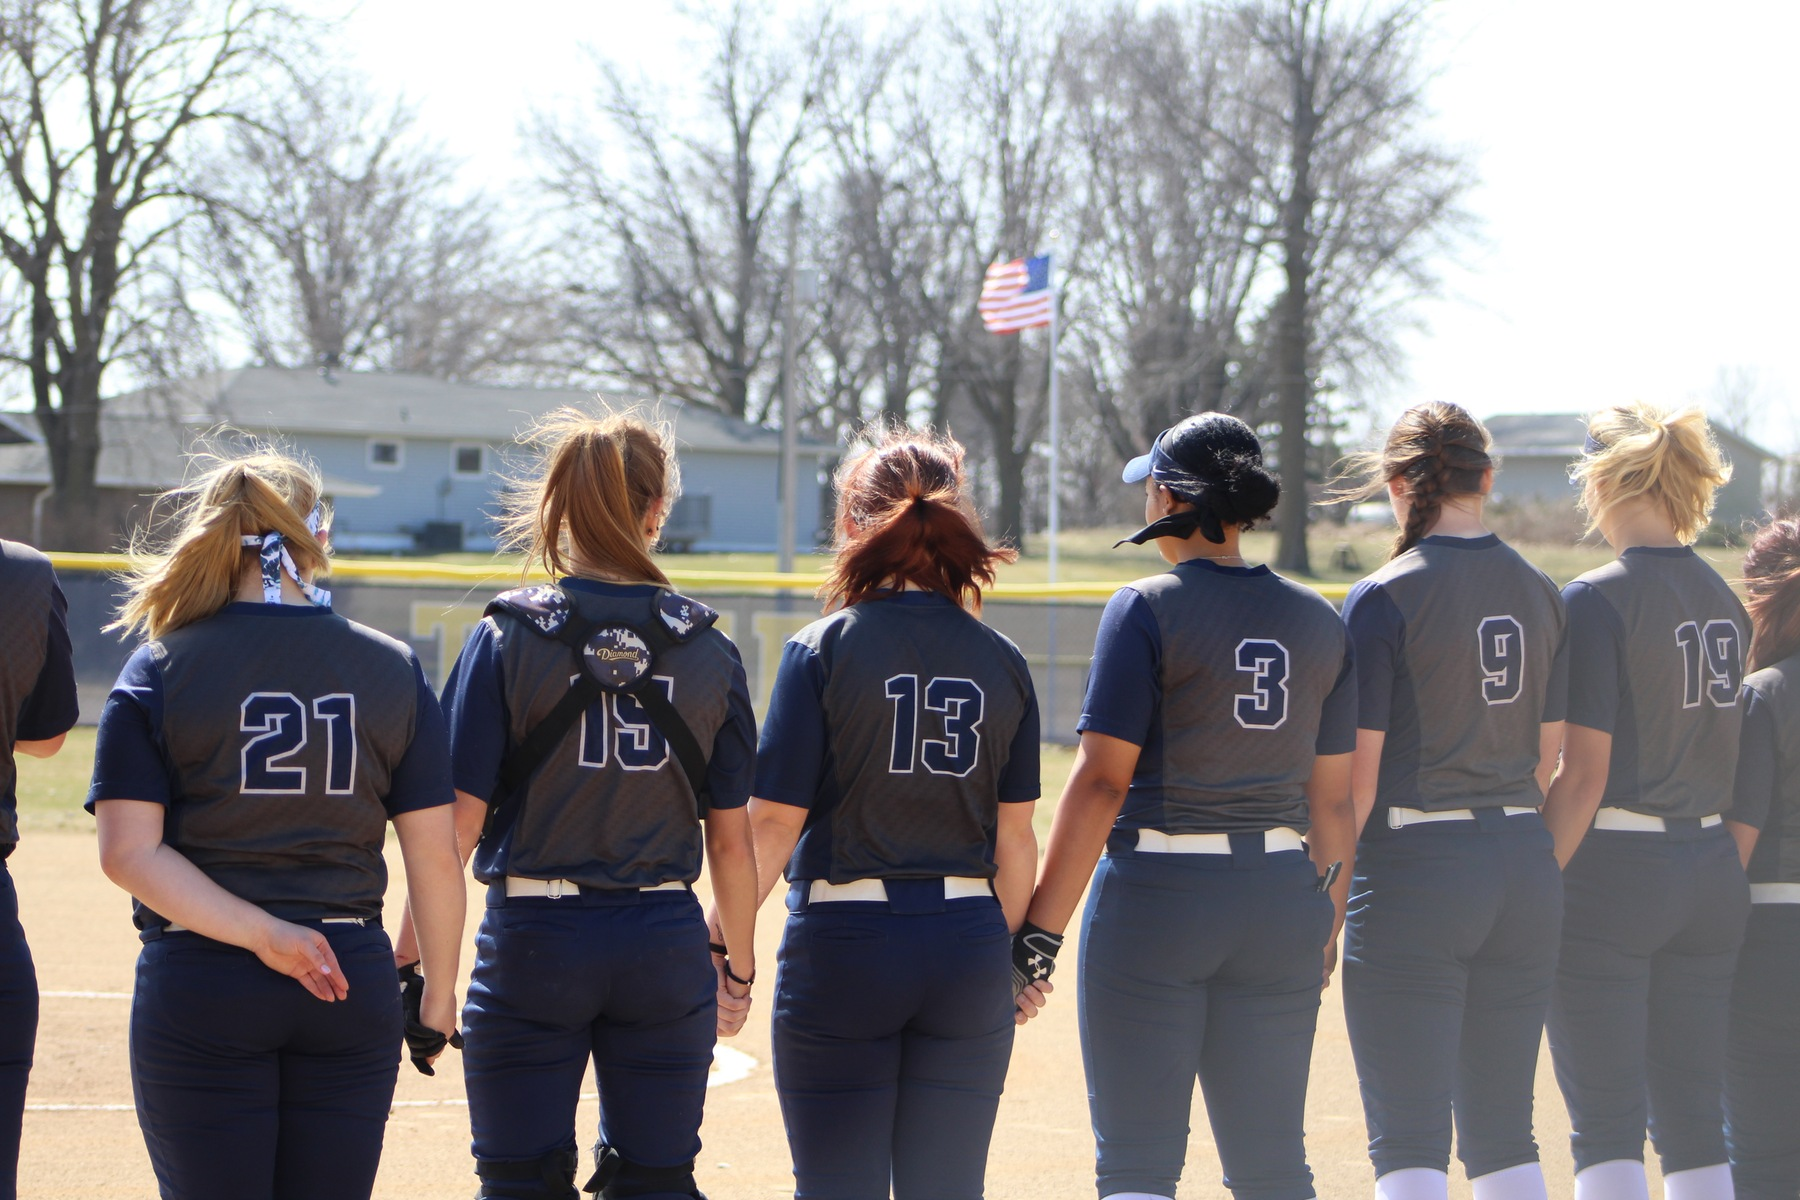 The MCC softball team dropped its opening game of the Region XI Tournament to top-seeded Indian Hills on Monday